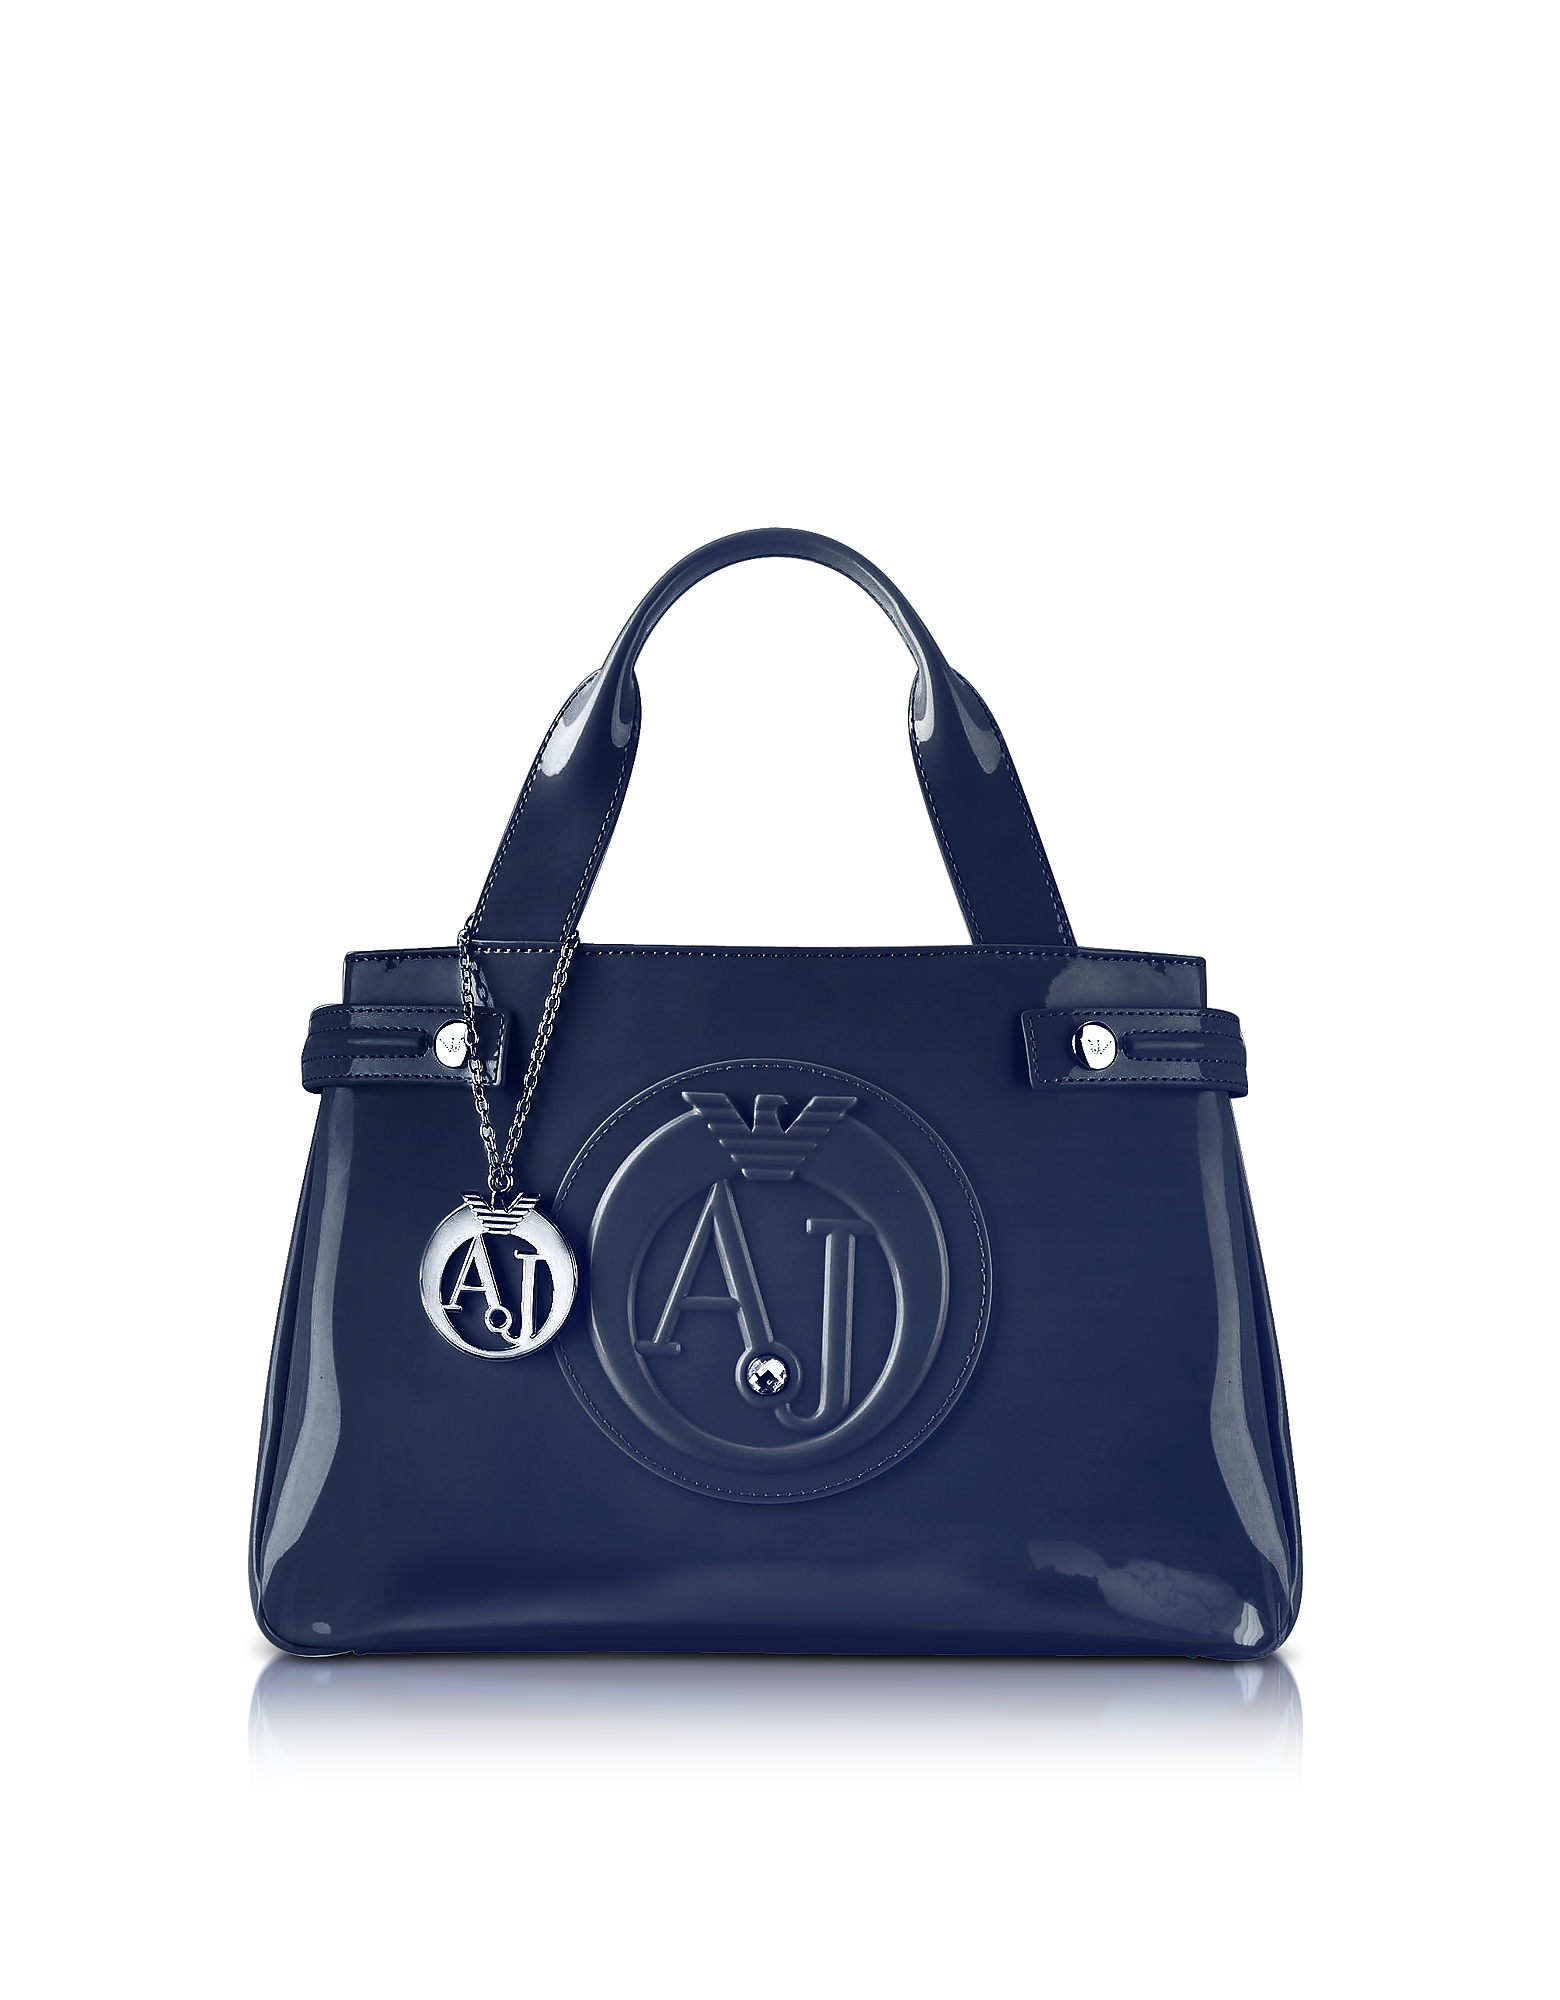 Armani Jeans Handbags, Medium Blue Faux Patent Leather Tote